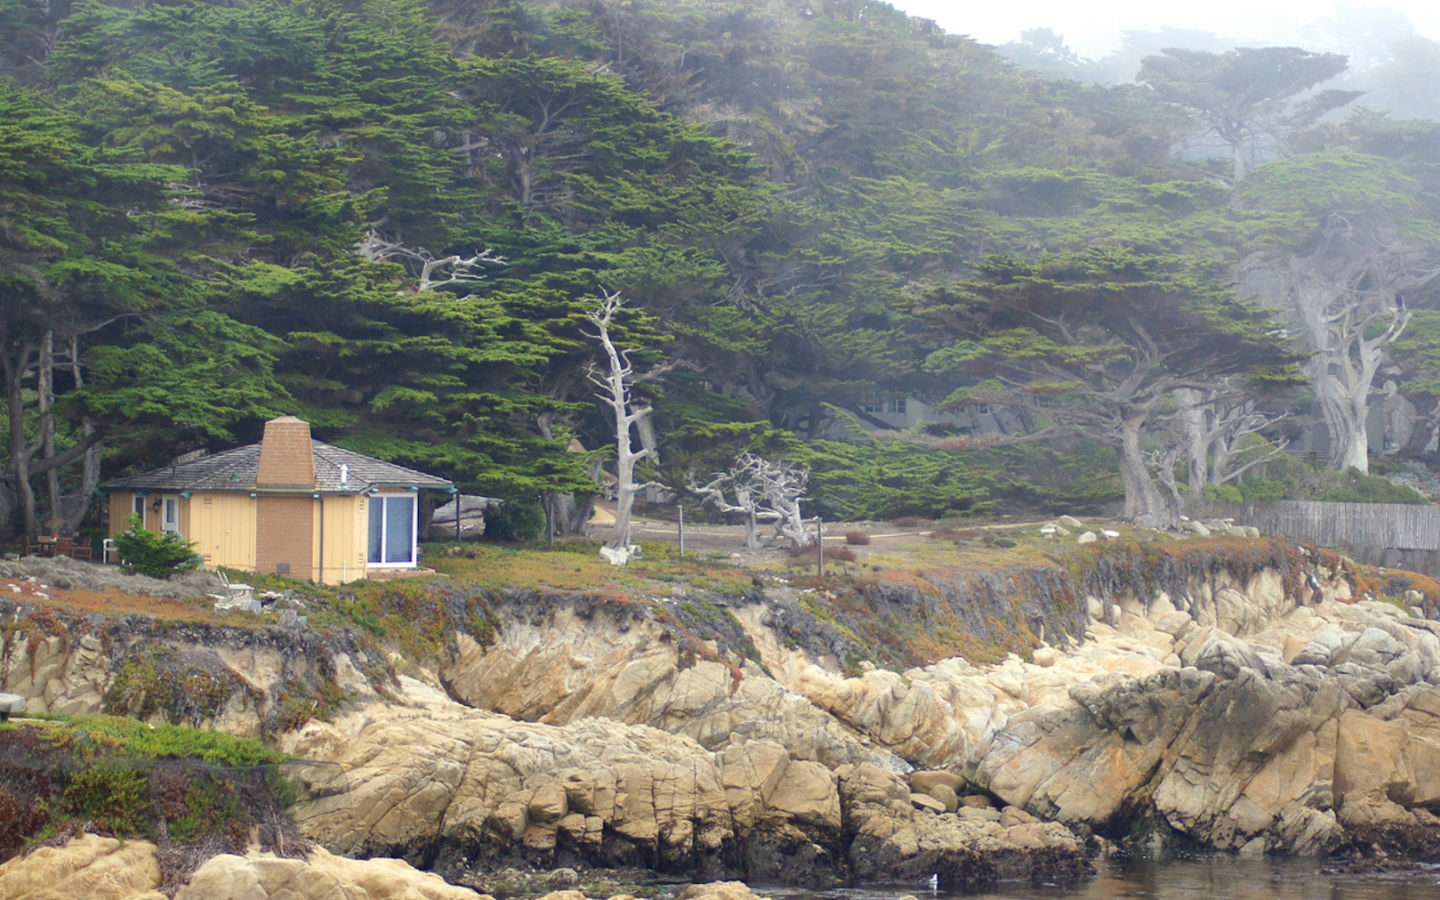 House, trees, and rocky cliffs by the ocean